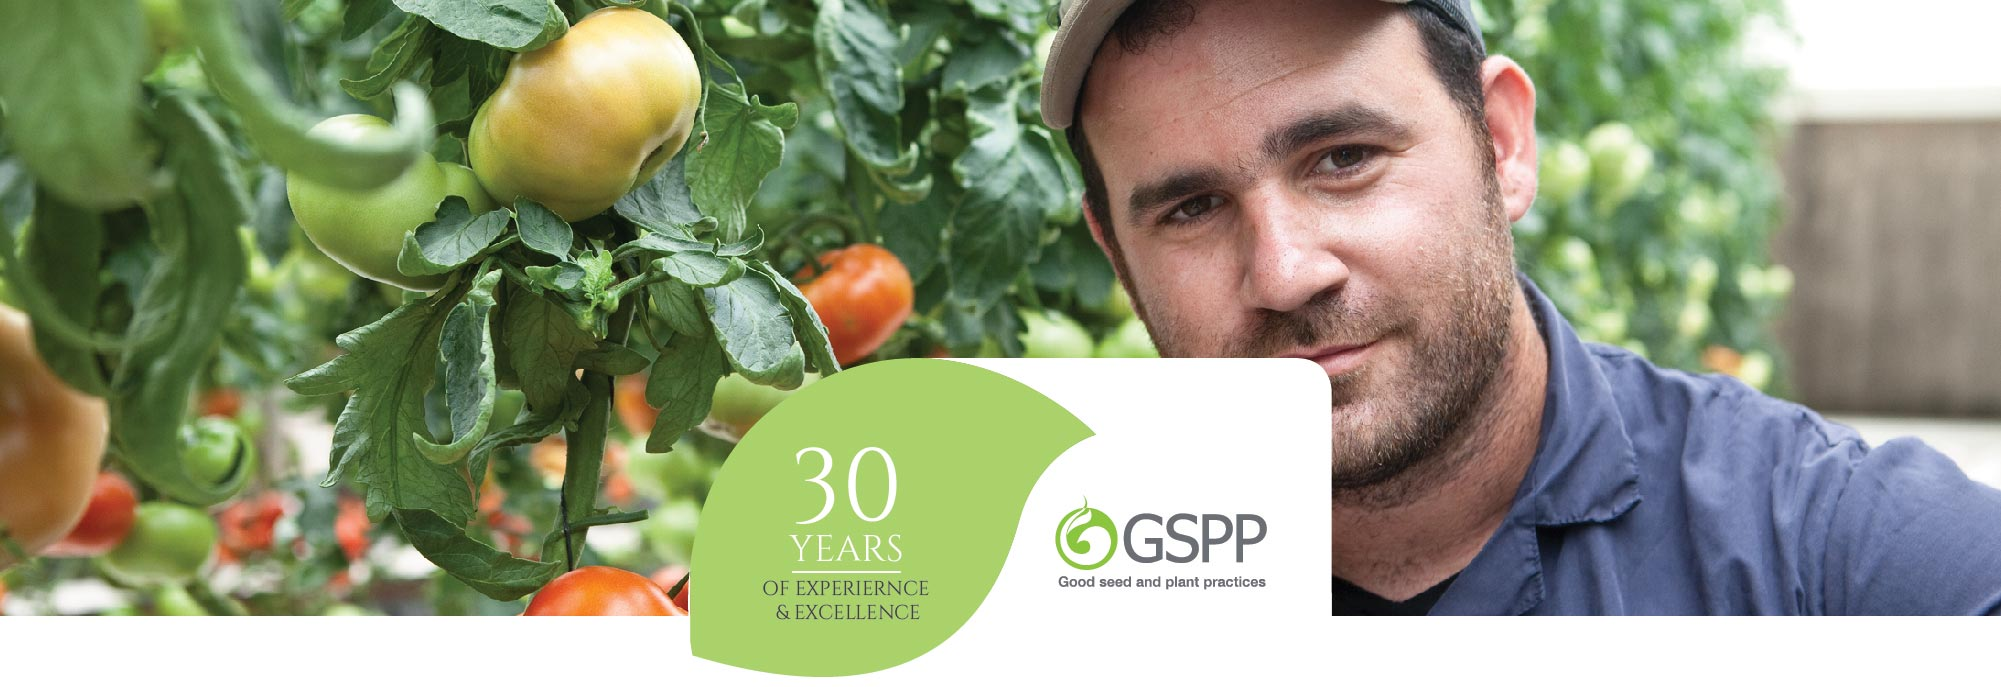 YAFFE SEEDS PRODUCTION- GSPP